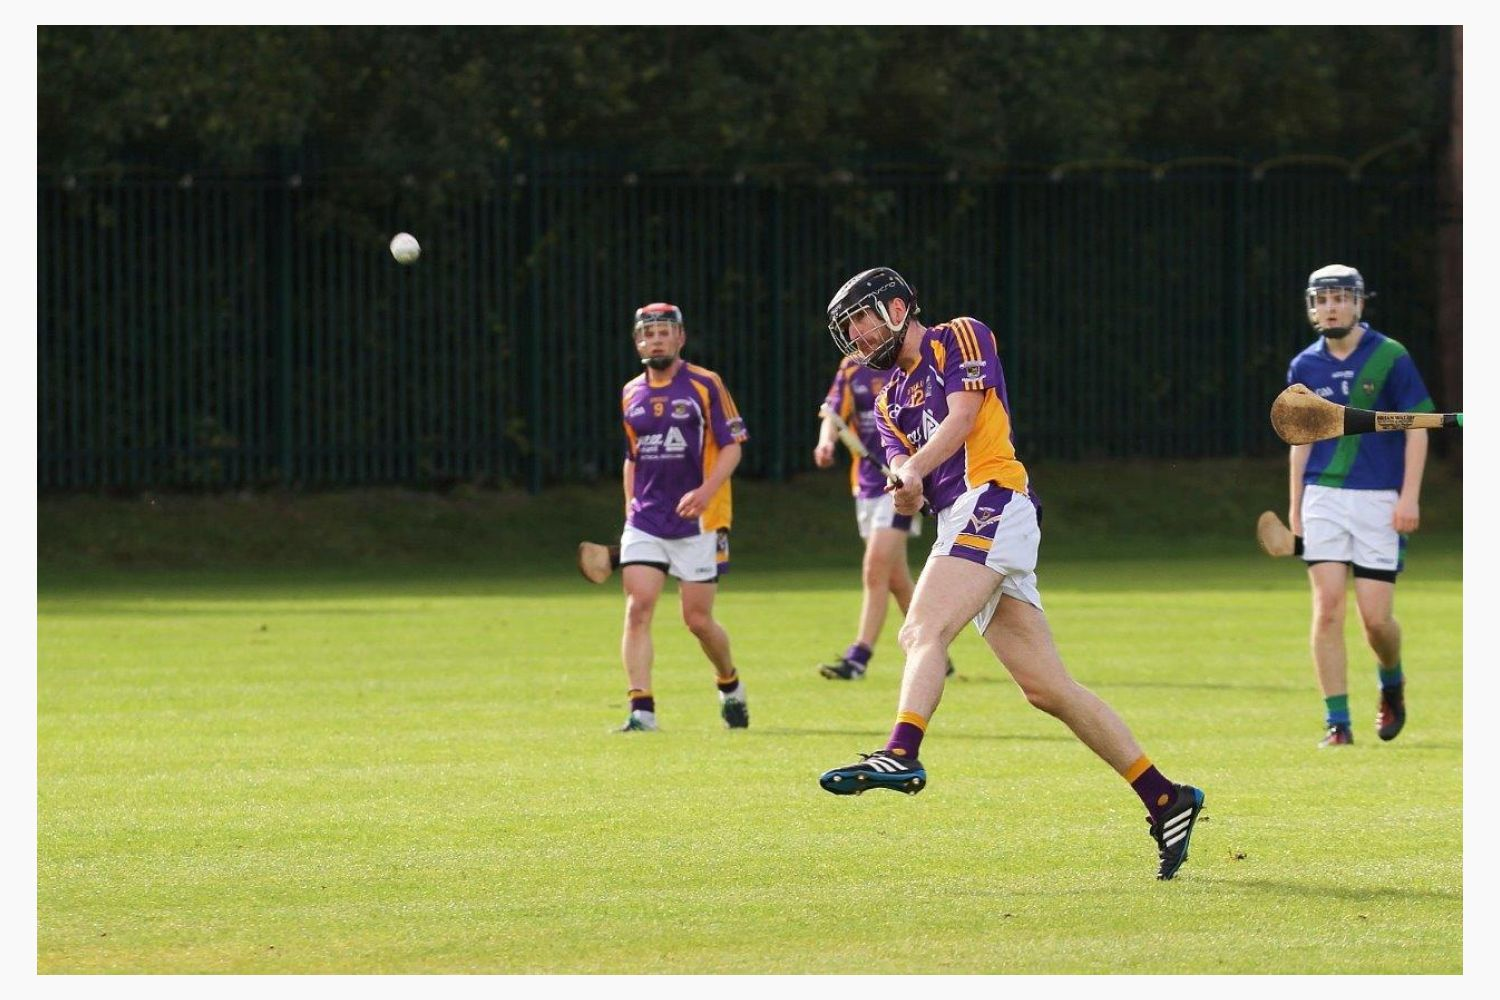 Another good win for Junior Hurlers in AHL 6